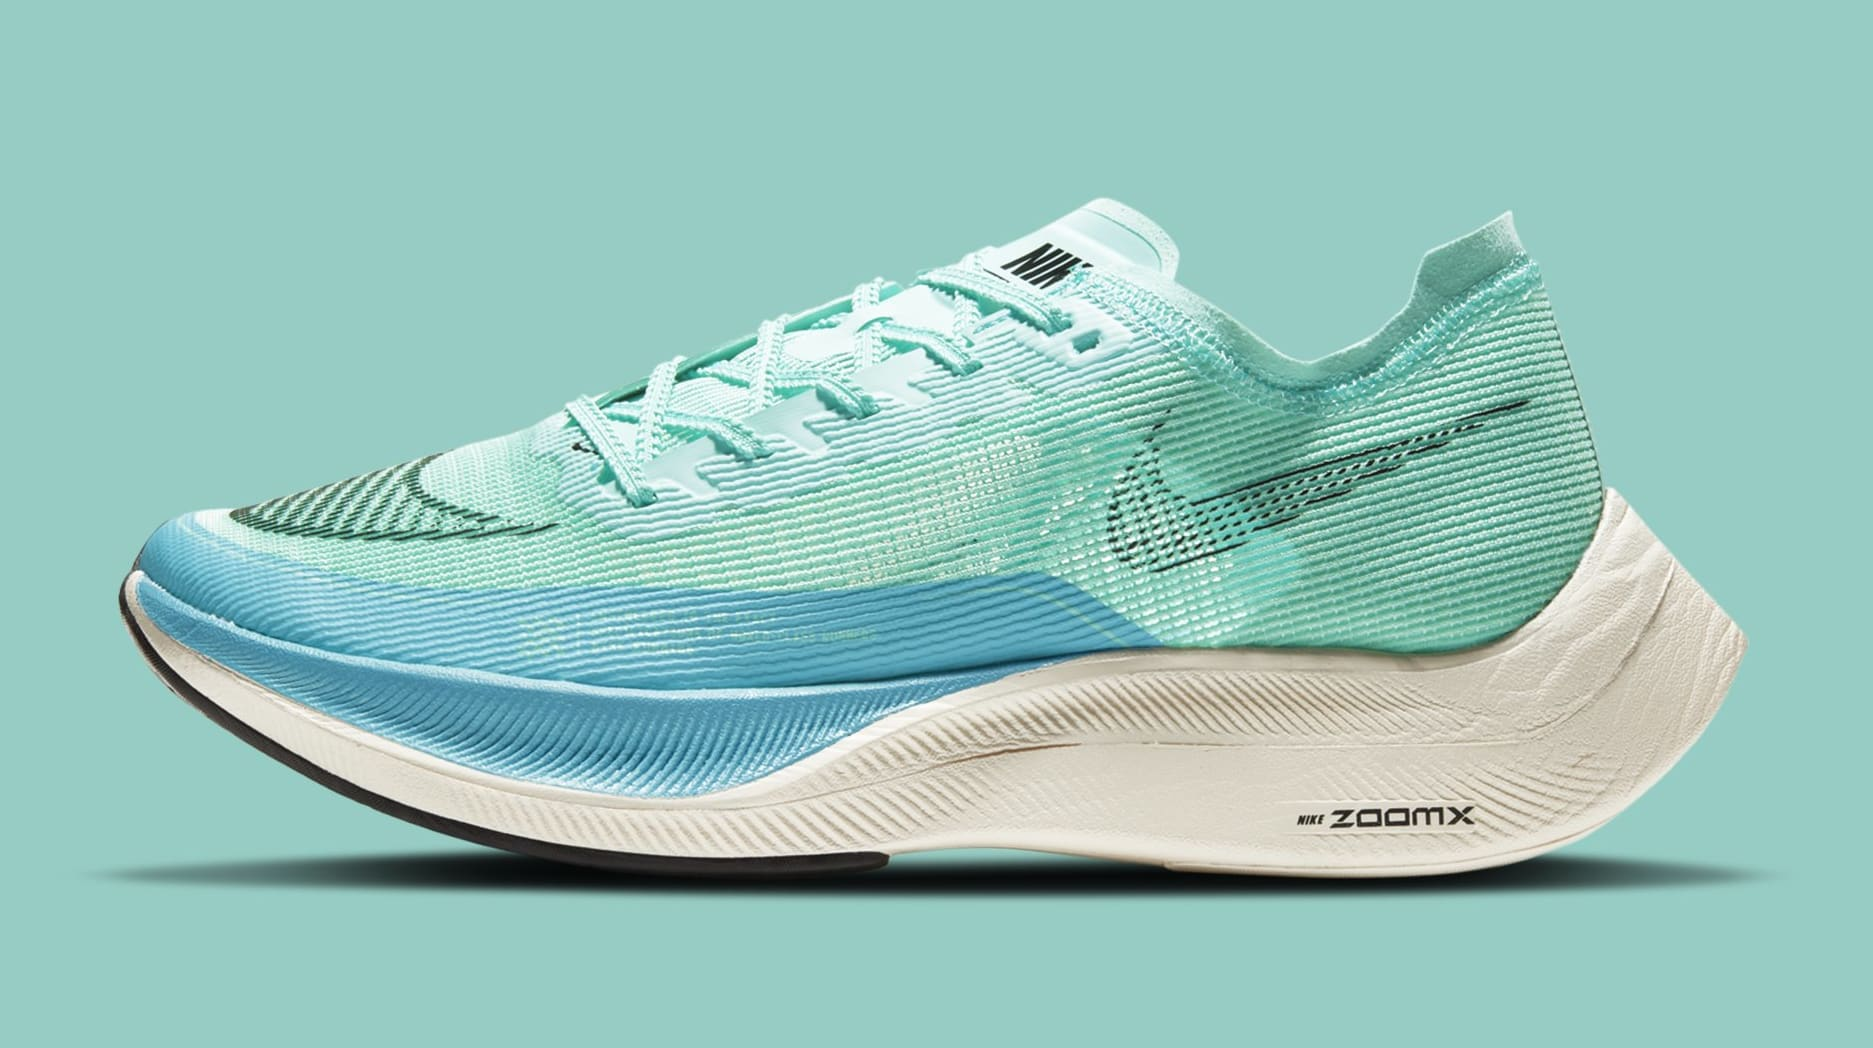 Nike Zoom Vaporfly Next% 2 CU4111-300 Lateral